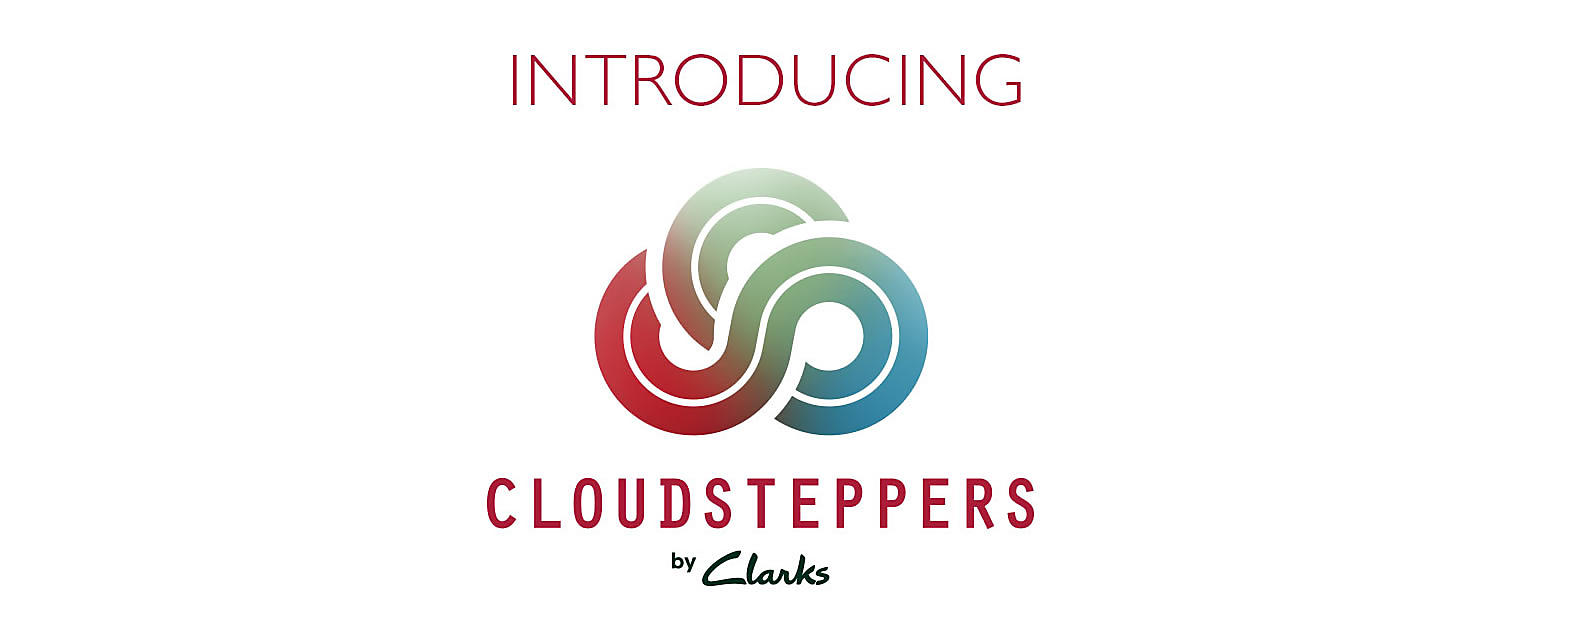 Introducing Cloudsteppers